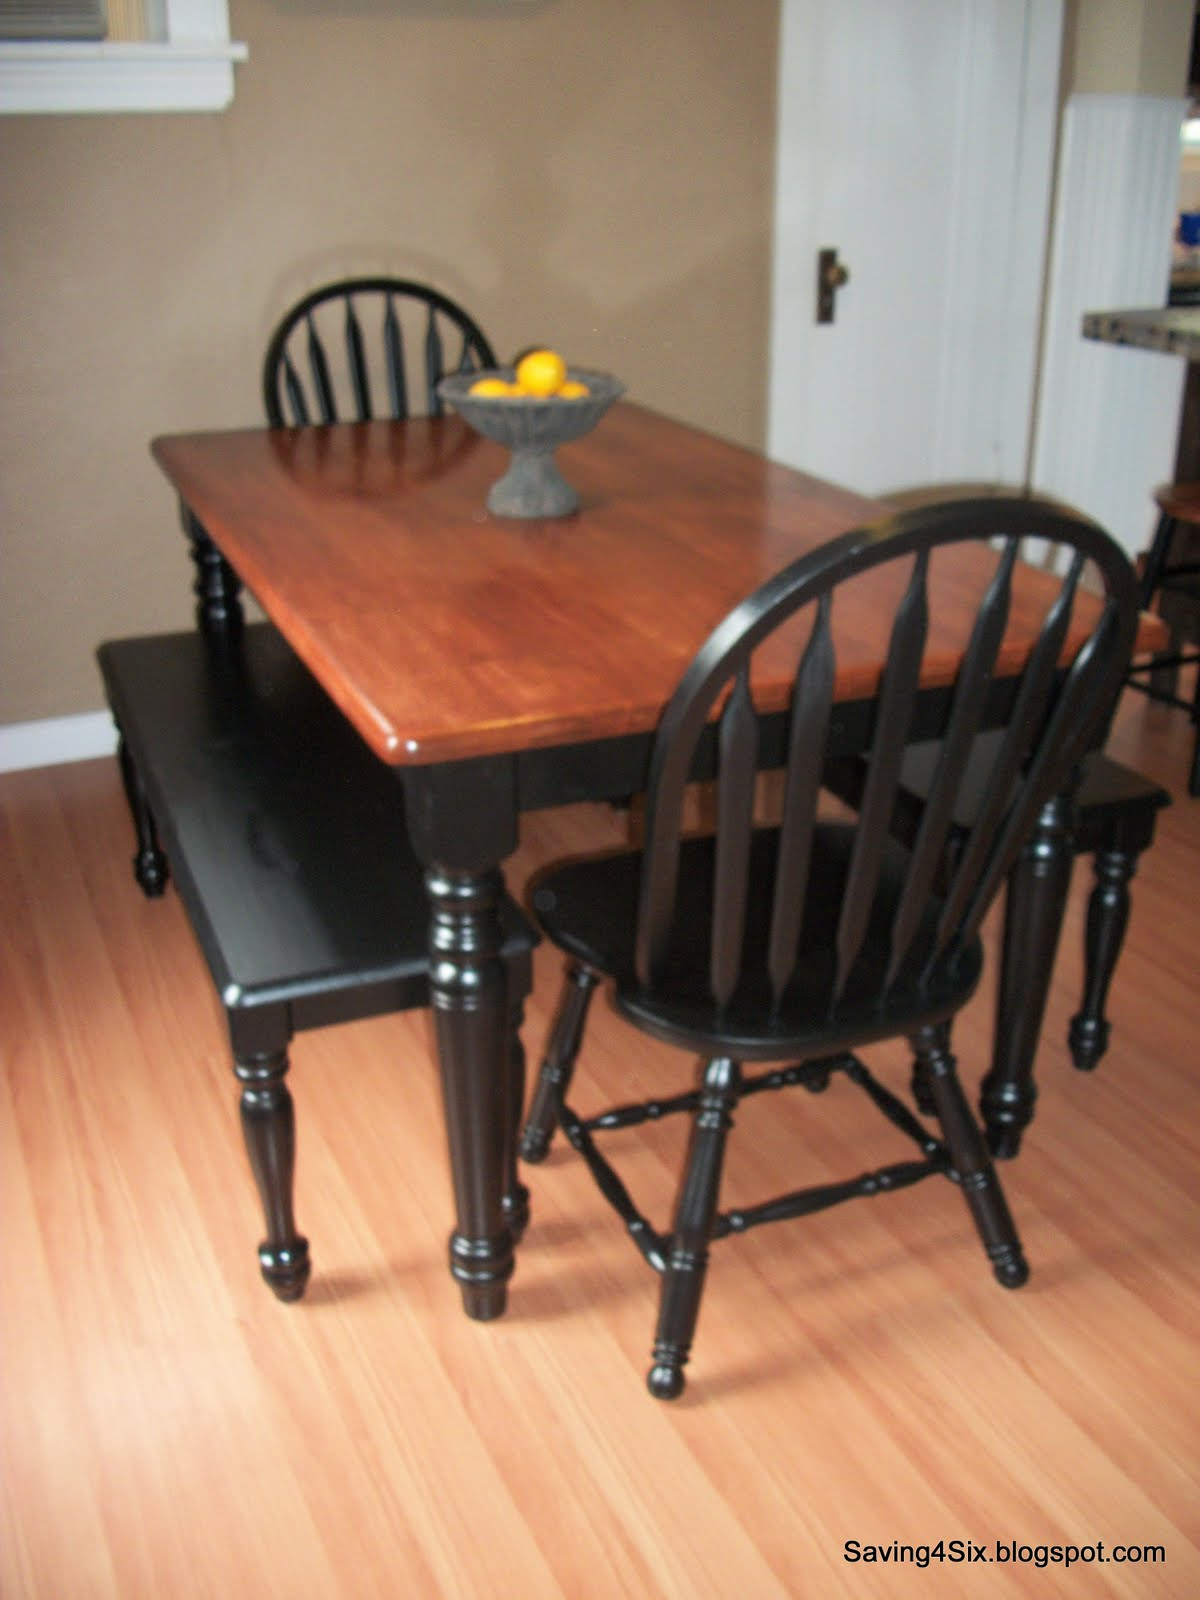 Refinishing the dining room table - Refinish contemporary dining room tables ...